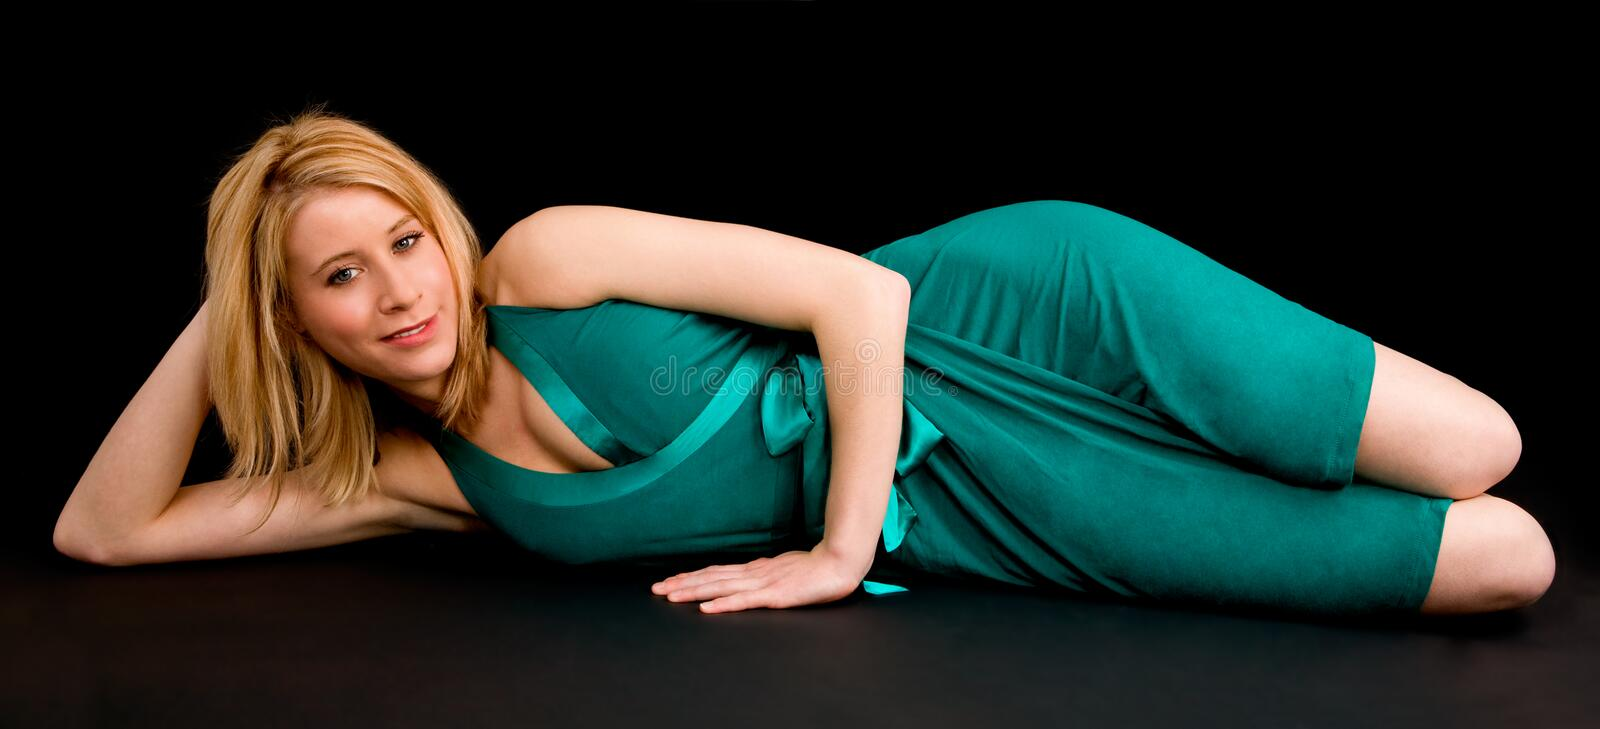 Pretty Smiling Blonde Lying Down And Relaxing Royalty Free Stock Photography